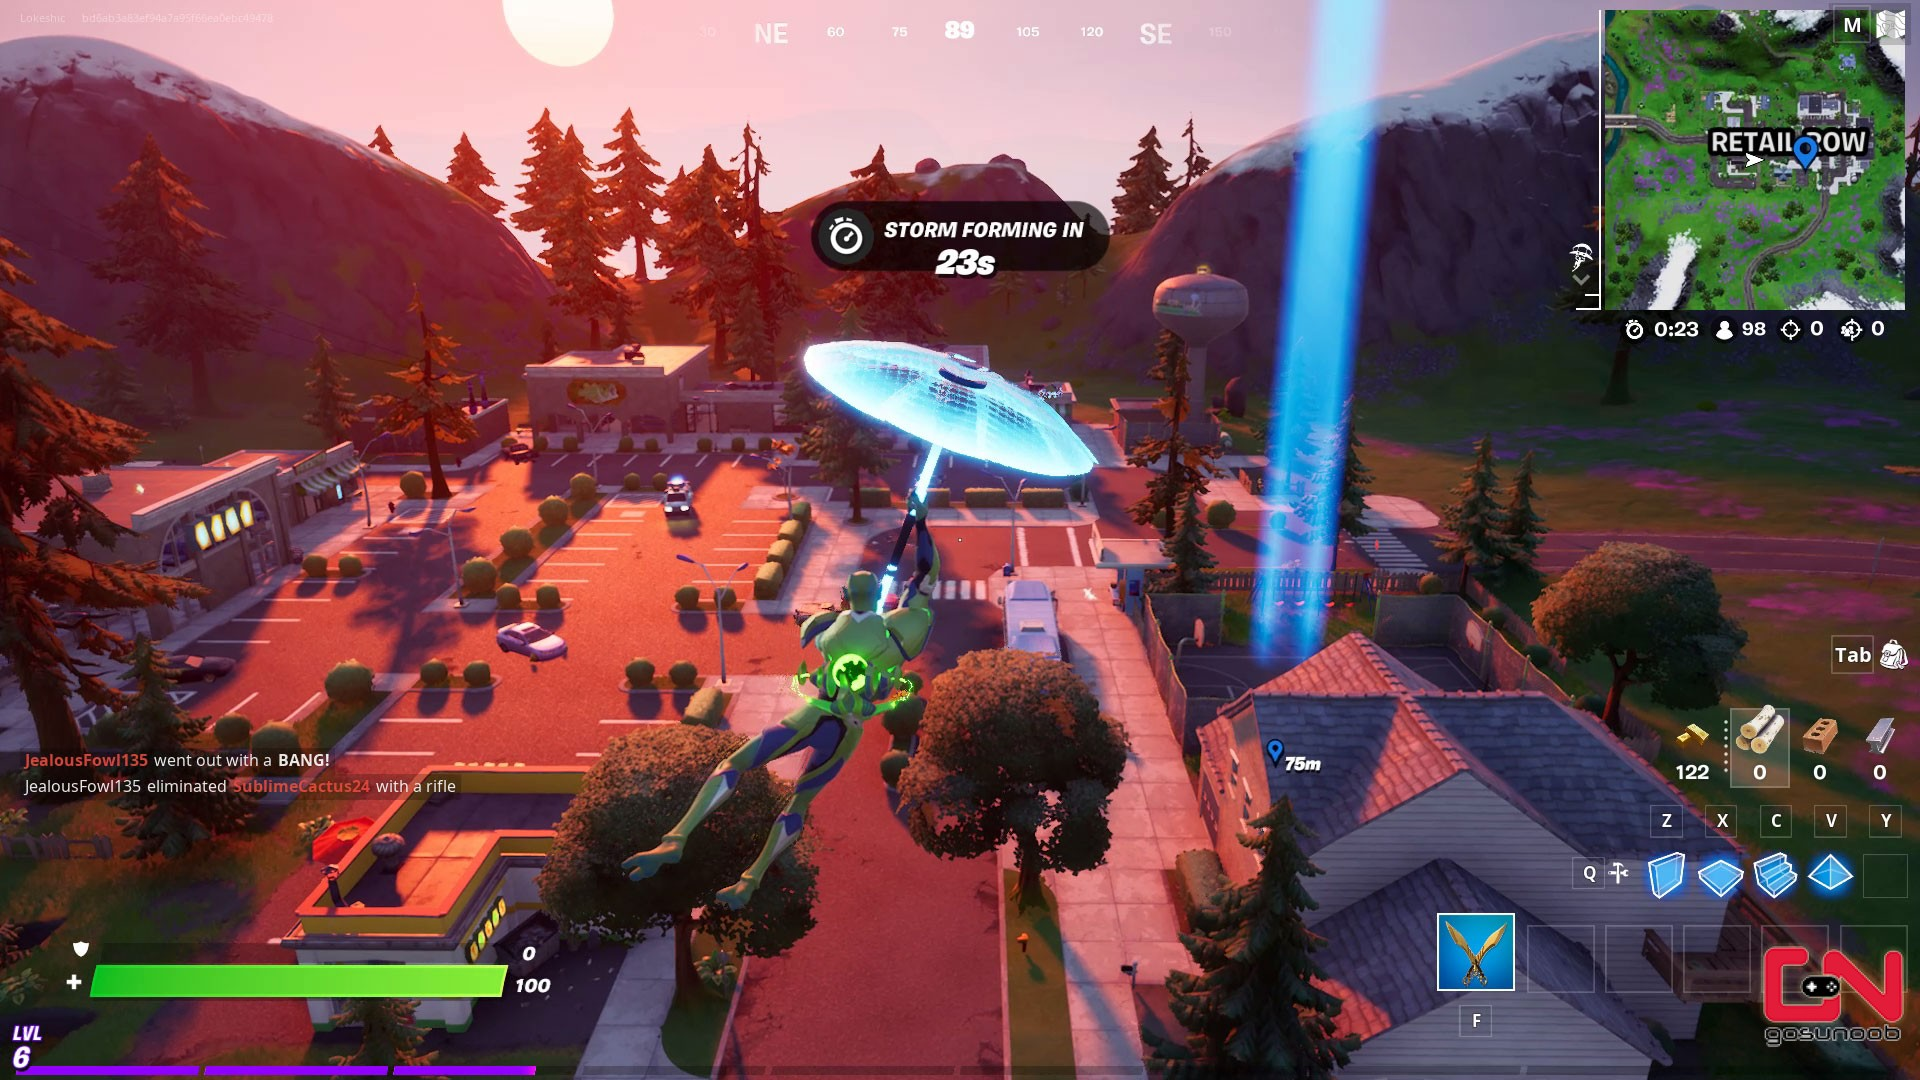 Why Are There Ducks In Fortnite Fortnite Rubber Ducks In Retail Row Pleasant Park And Believer Beach